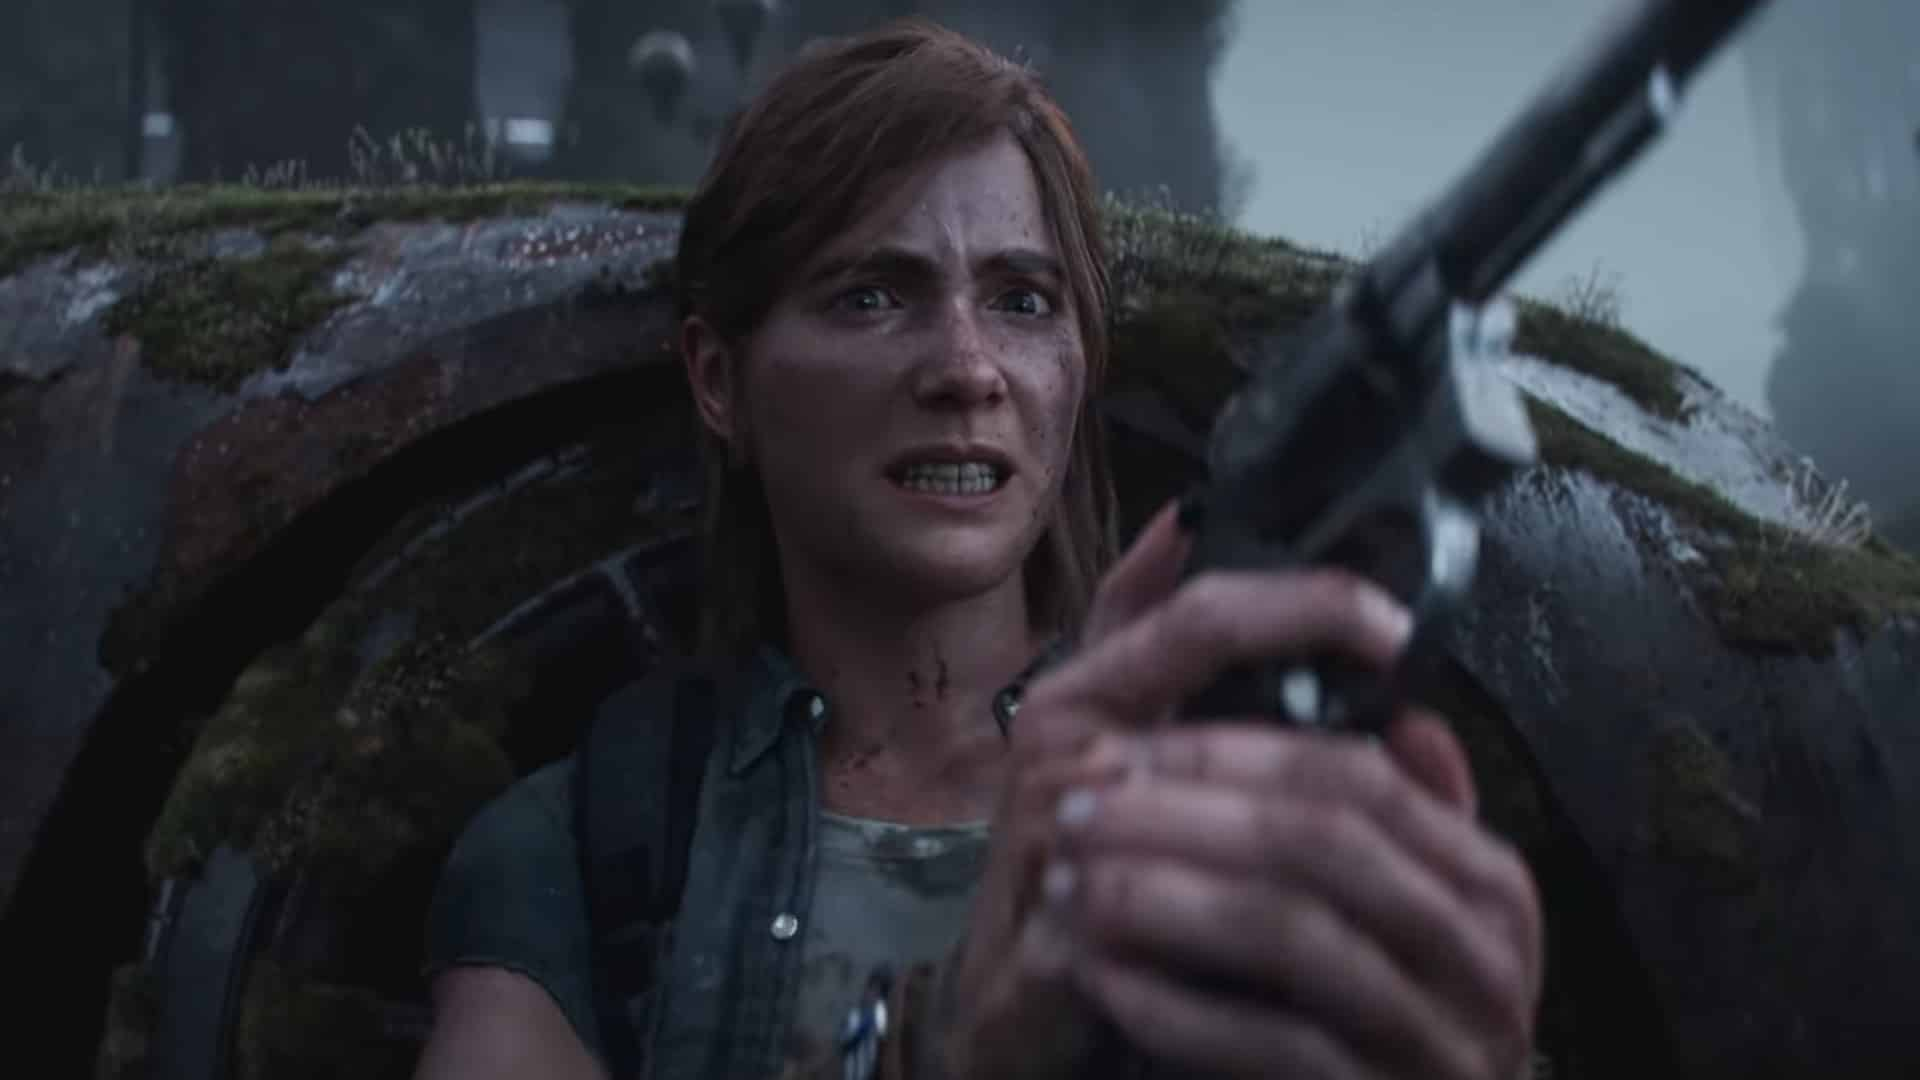 The Last of Us Part II launch trailer